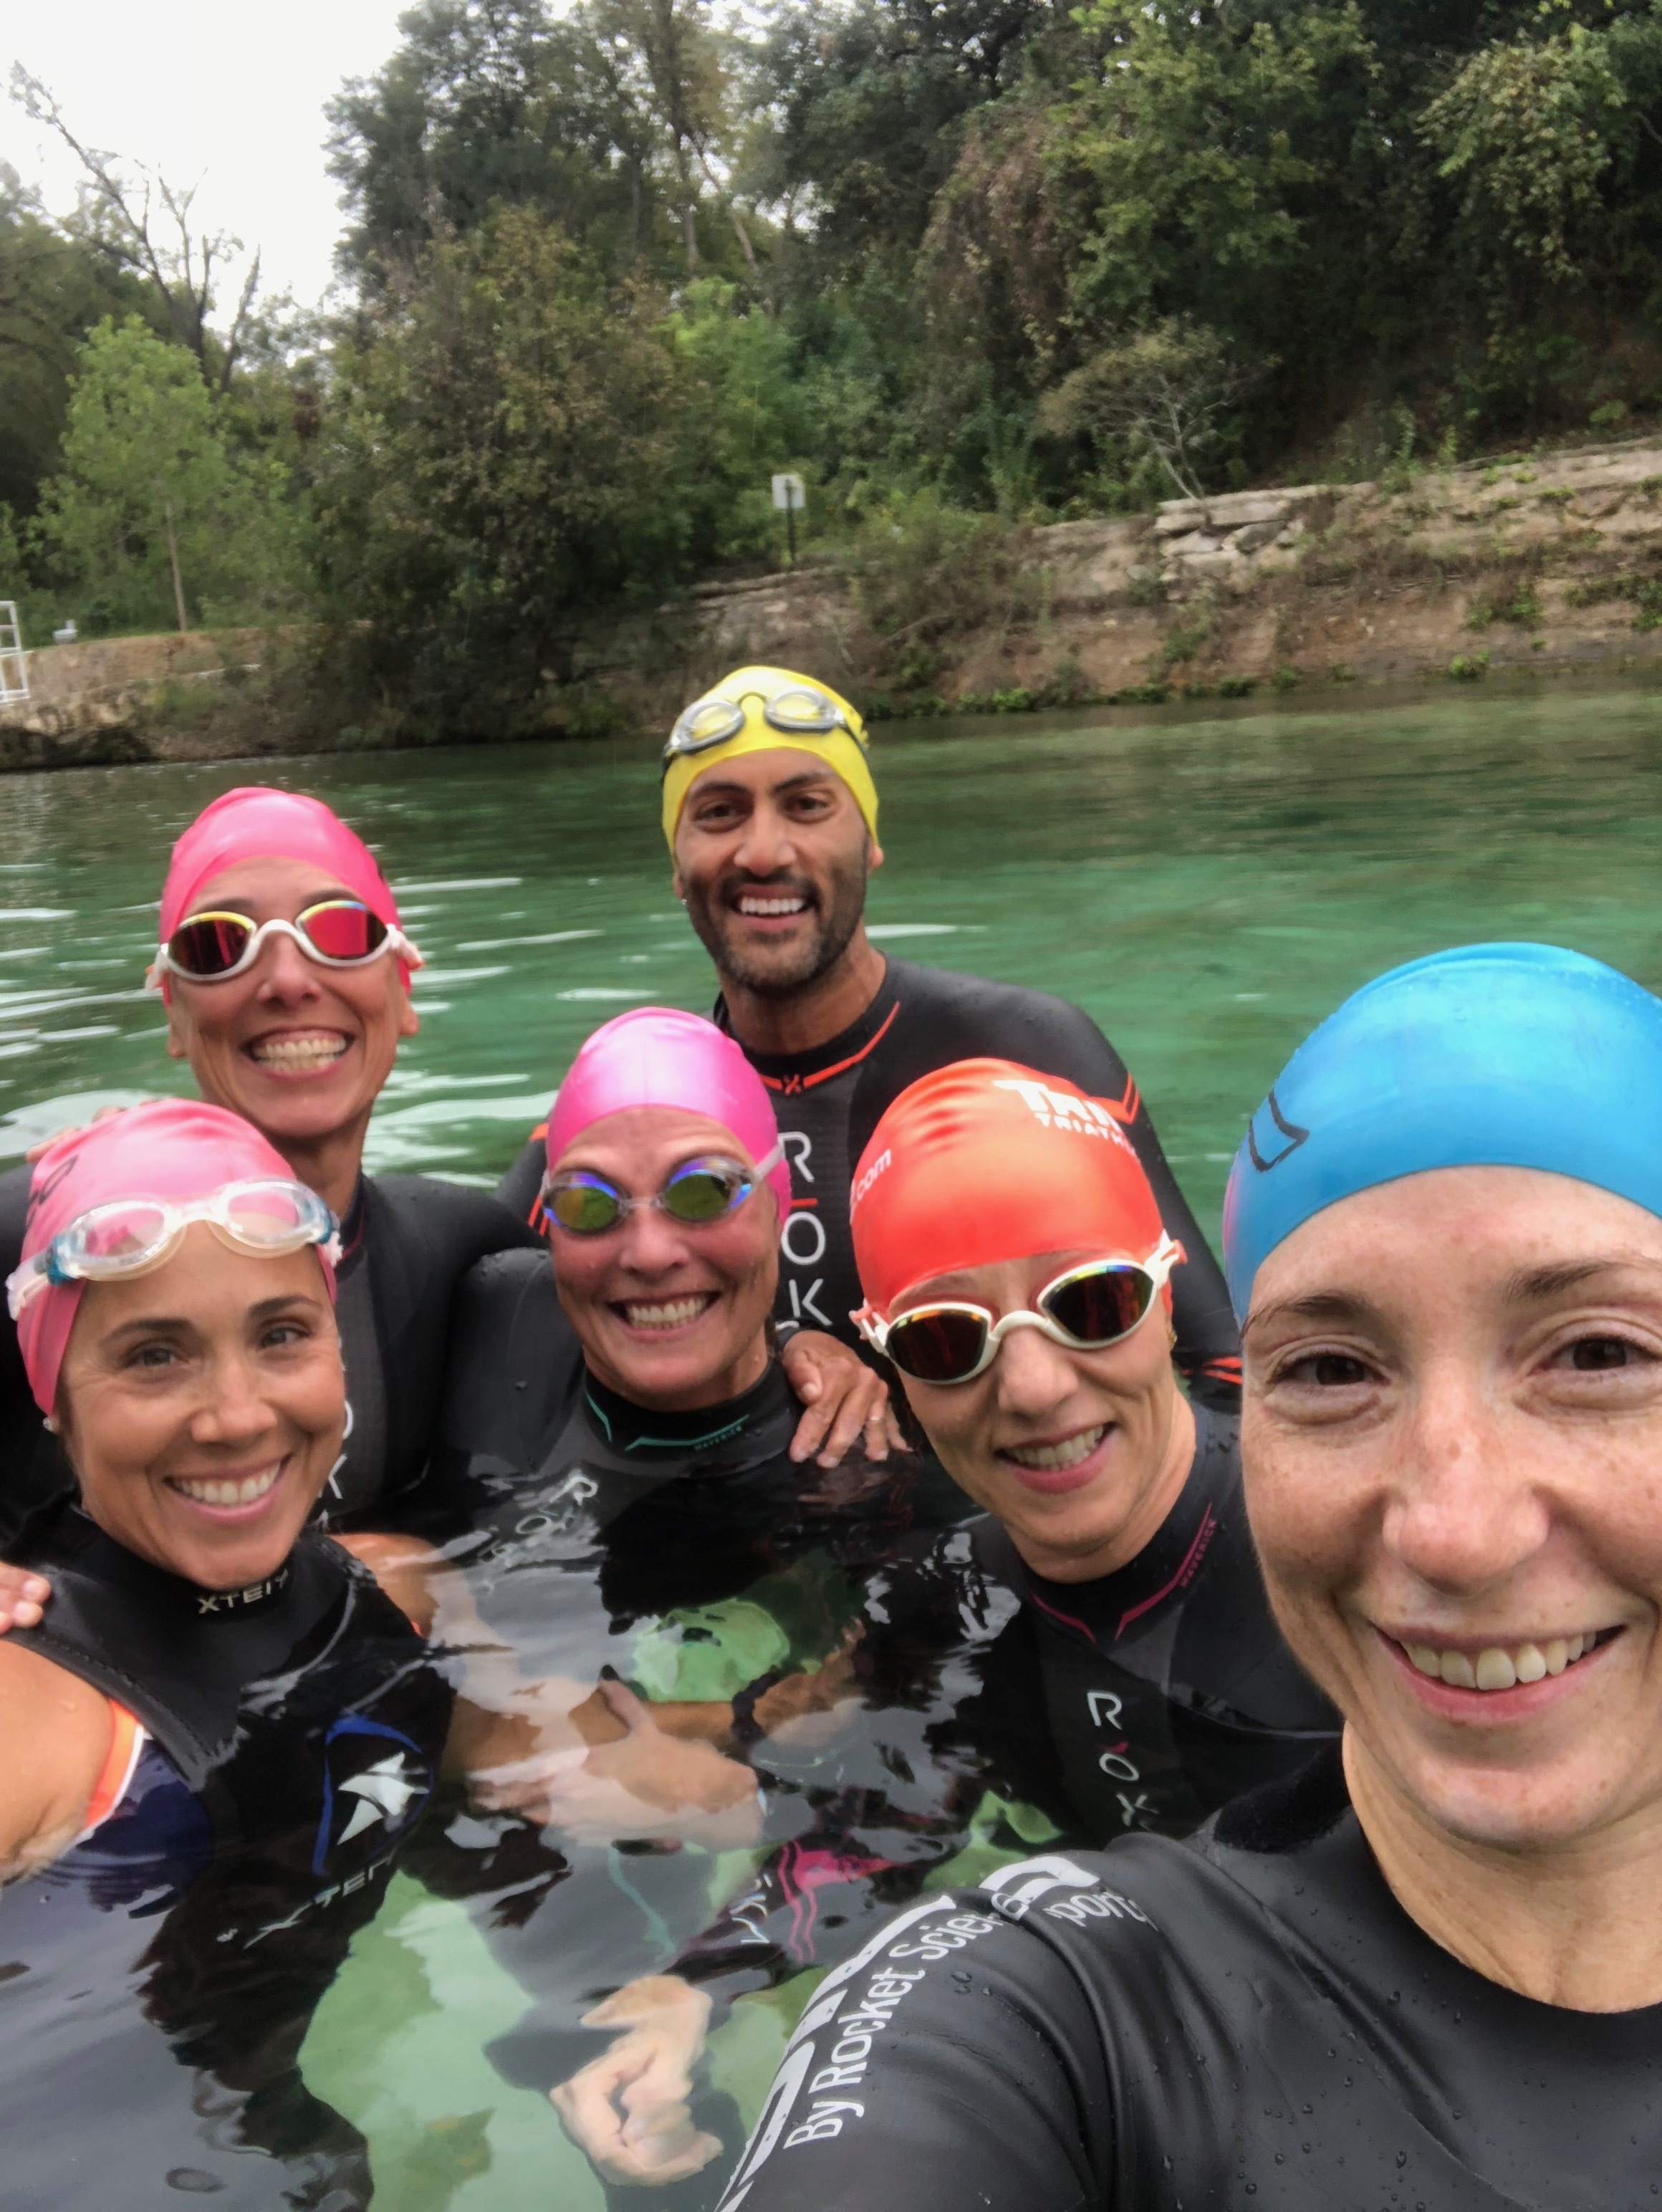 A little wetsuit practice at Barton Springs Pool with this team of bad-asses from the Austin Aquatics and Sports Academy.